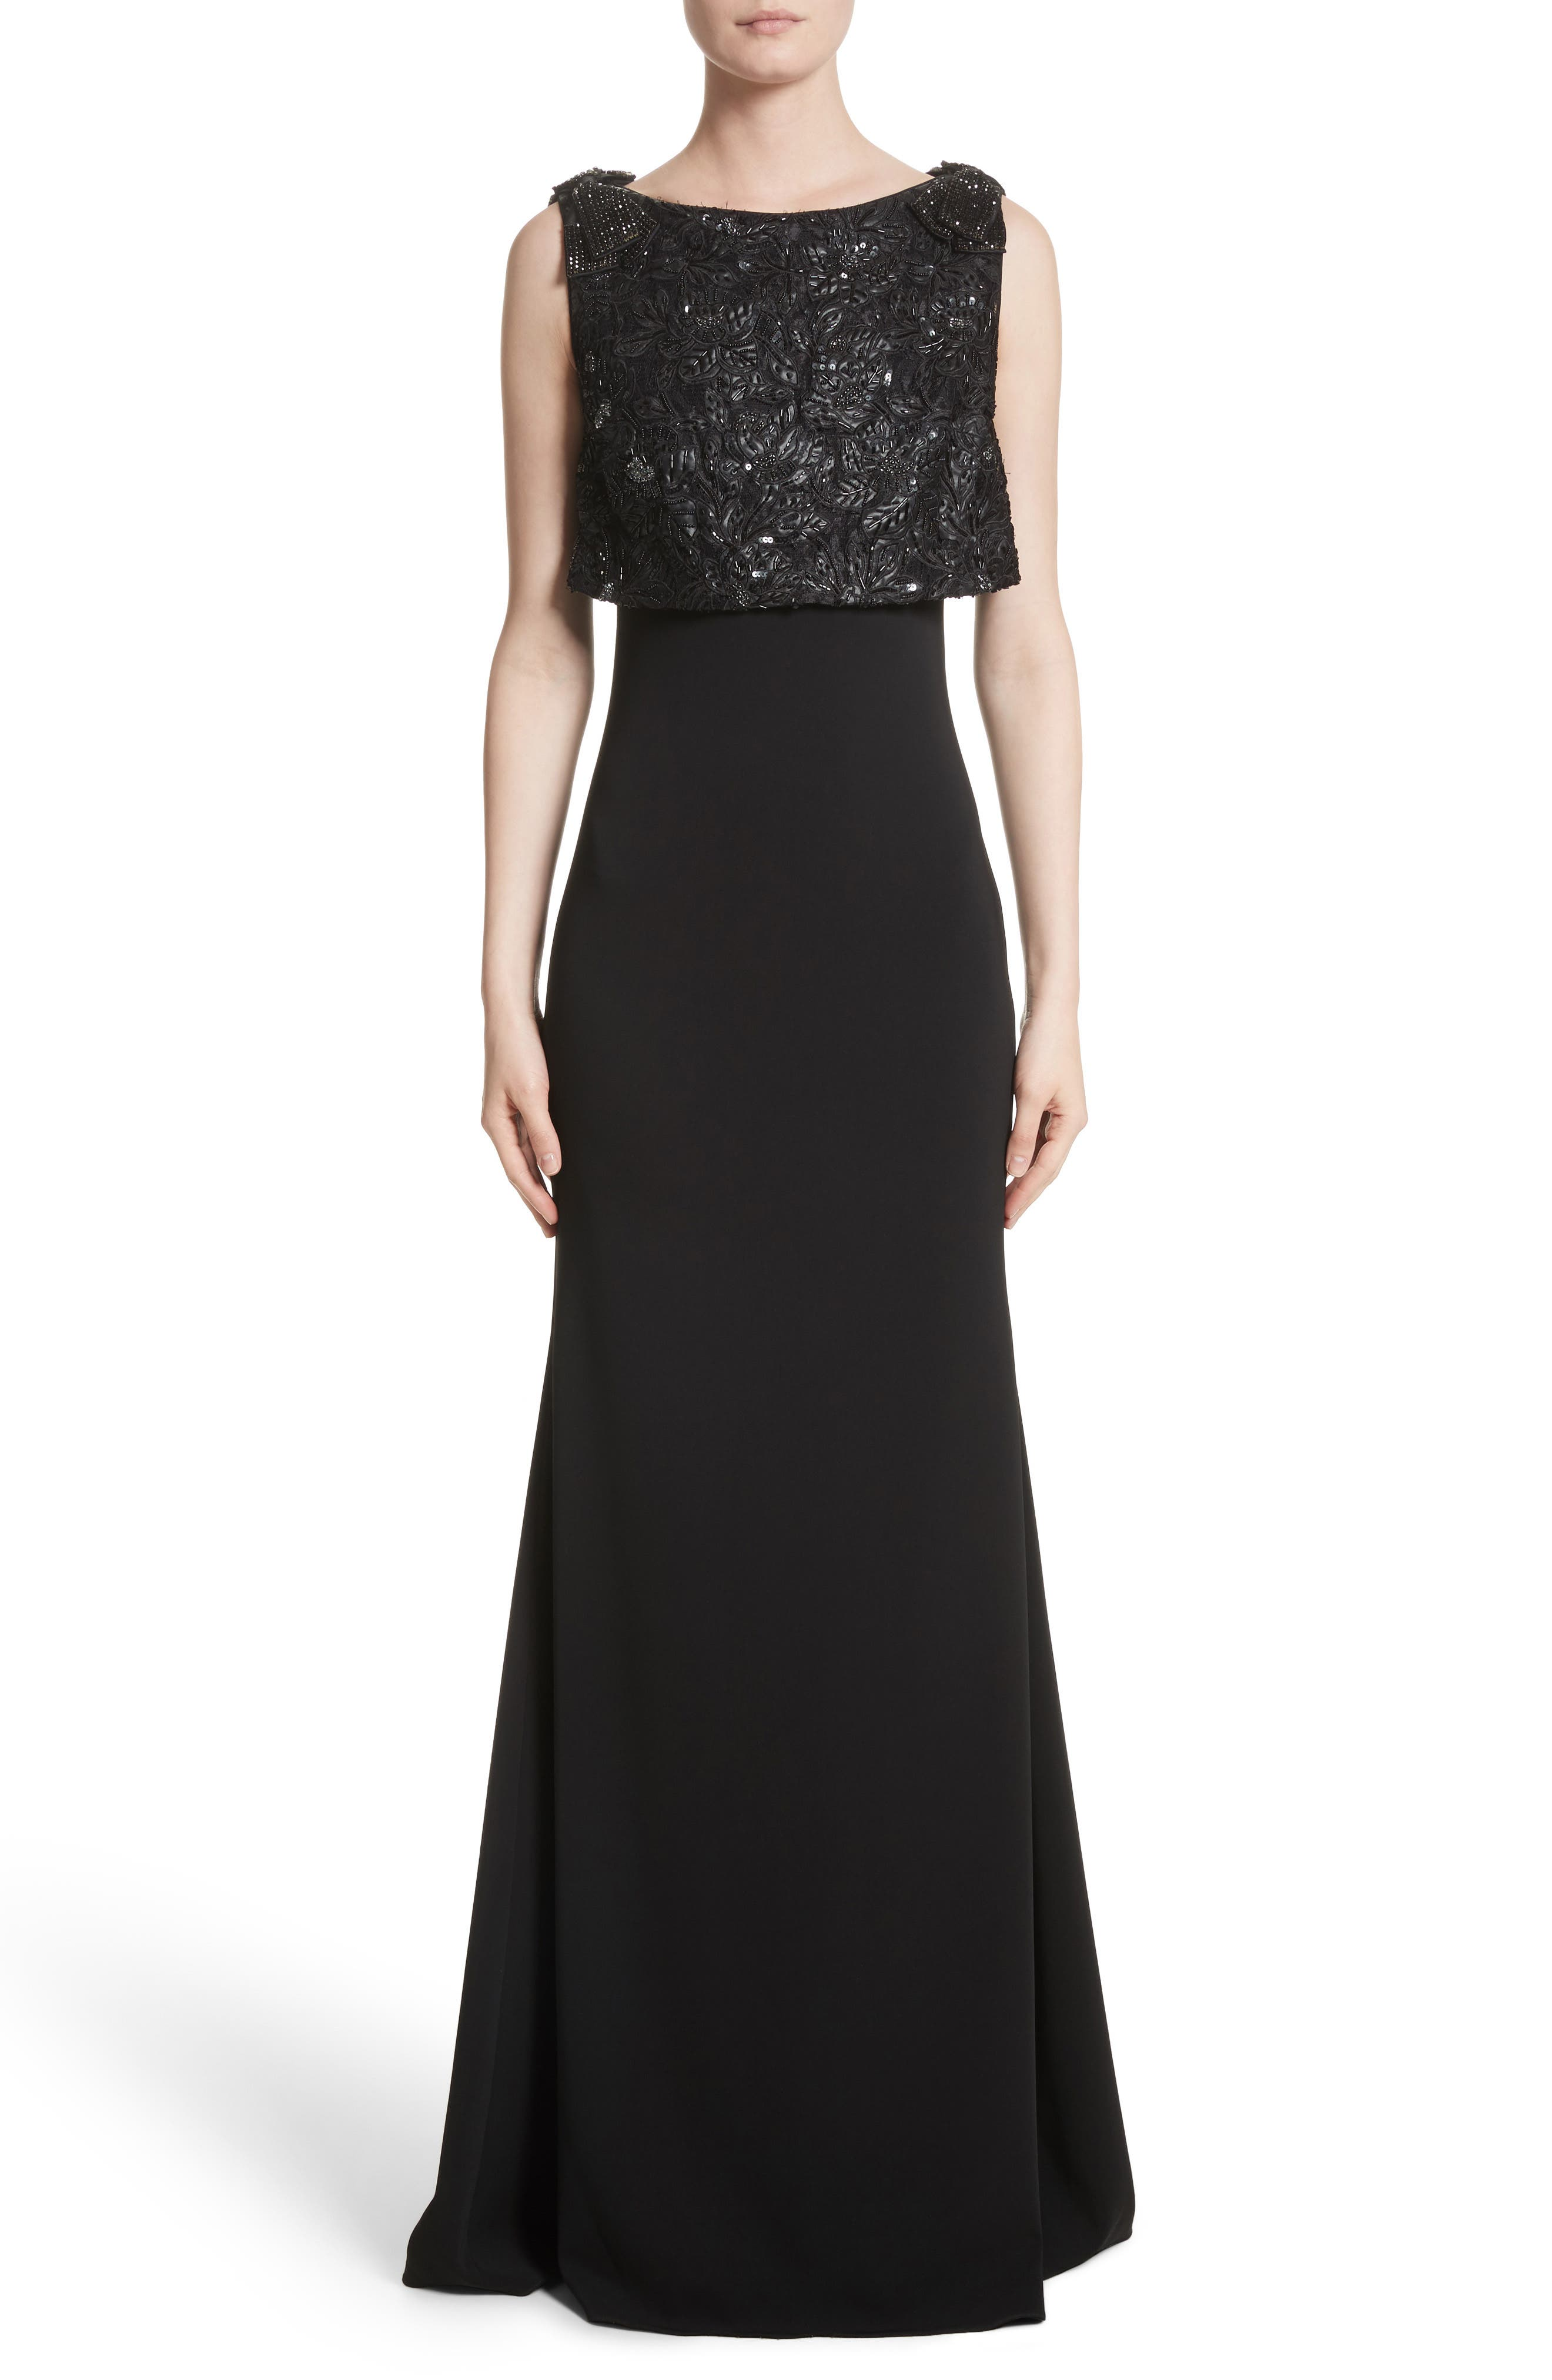 Badgley Mischka Couture Embellished Popover Gown,                             Main thumbnail 1, color,                             001